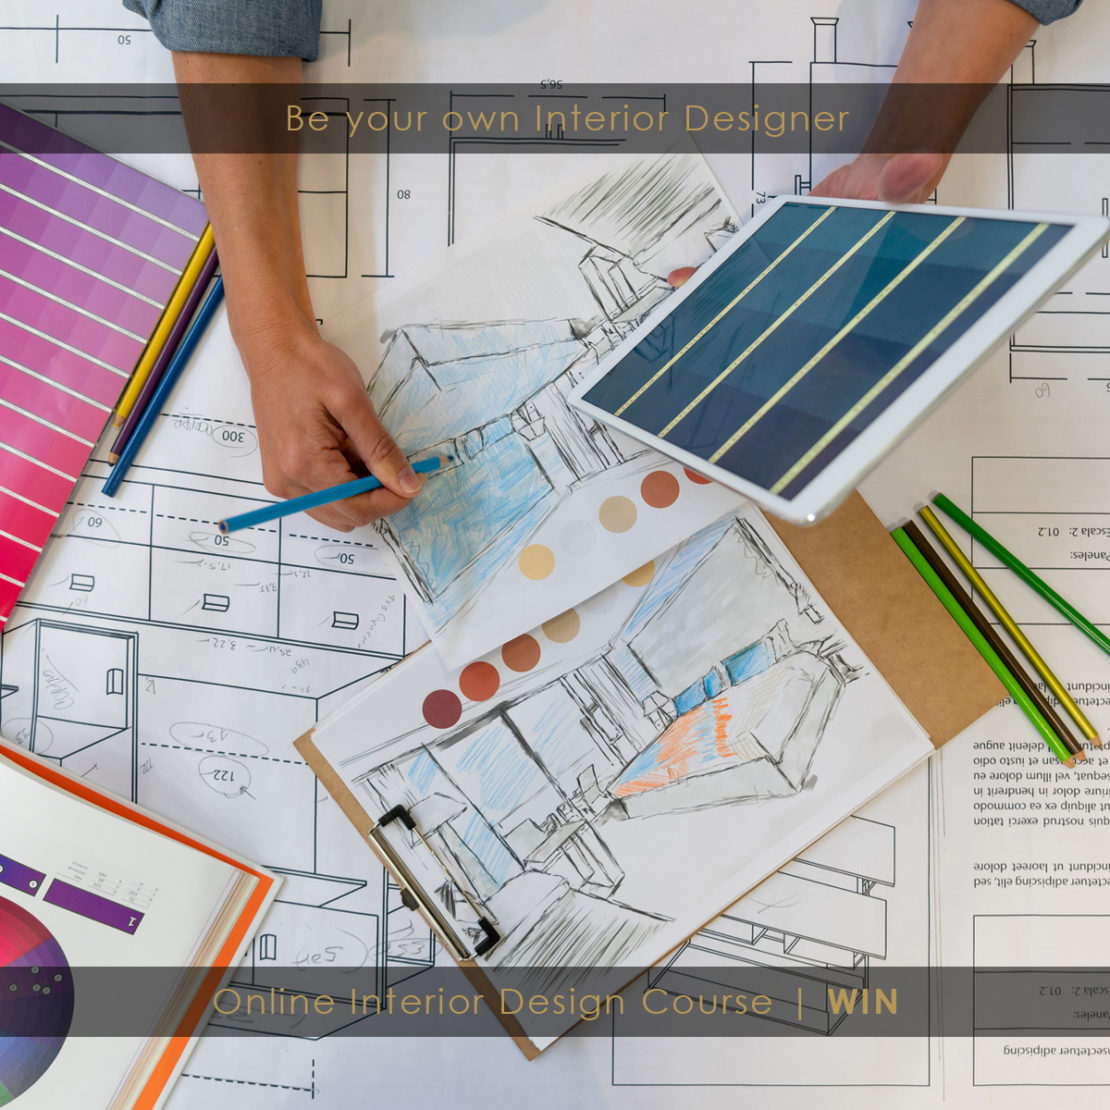 Online interior design course, win a free place